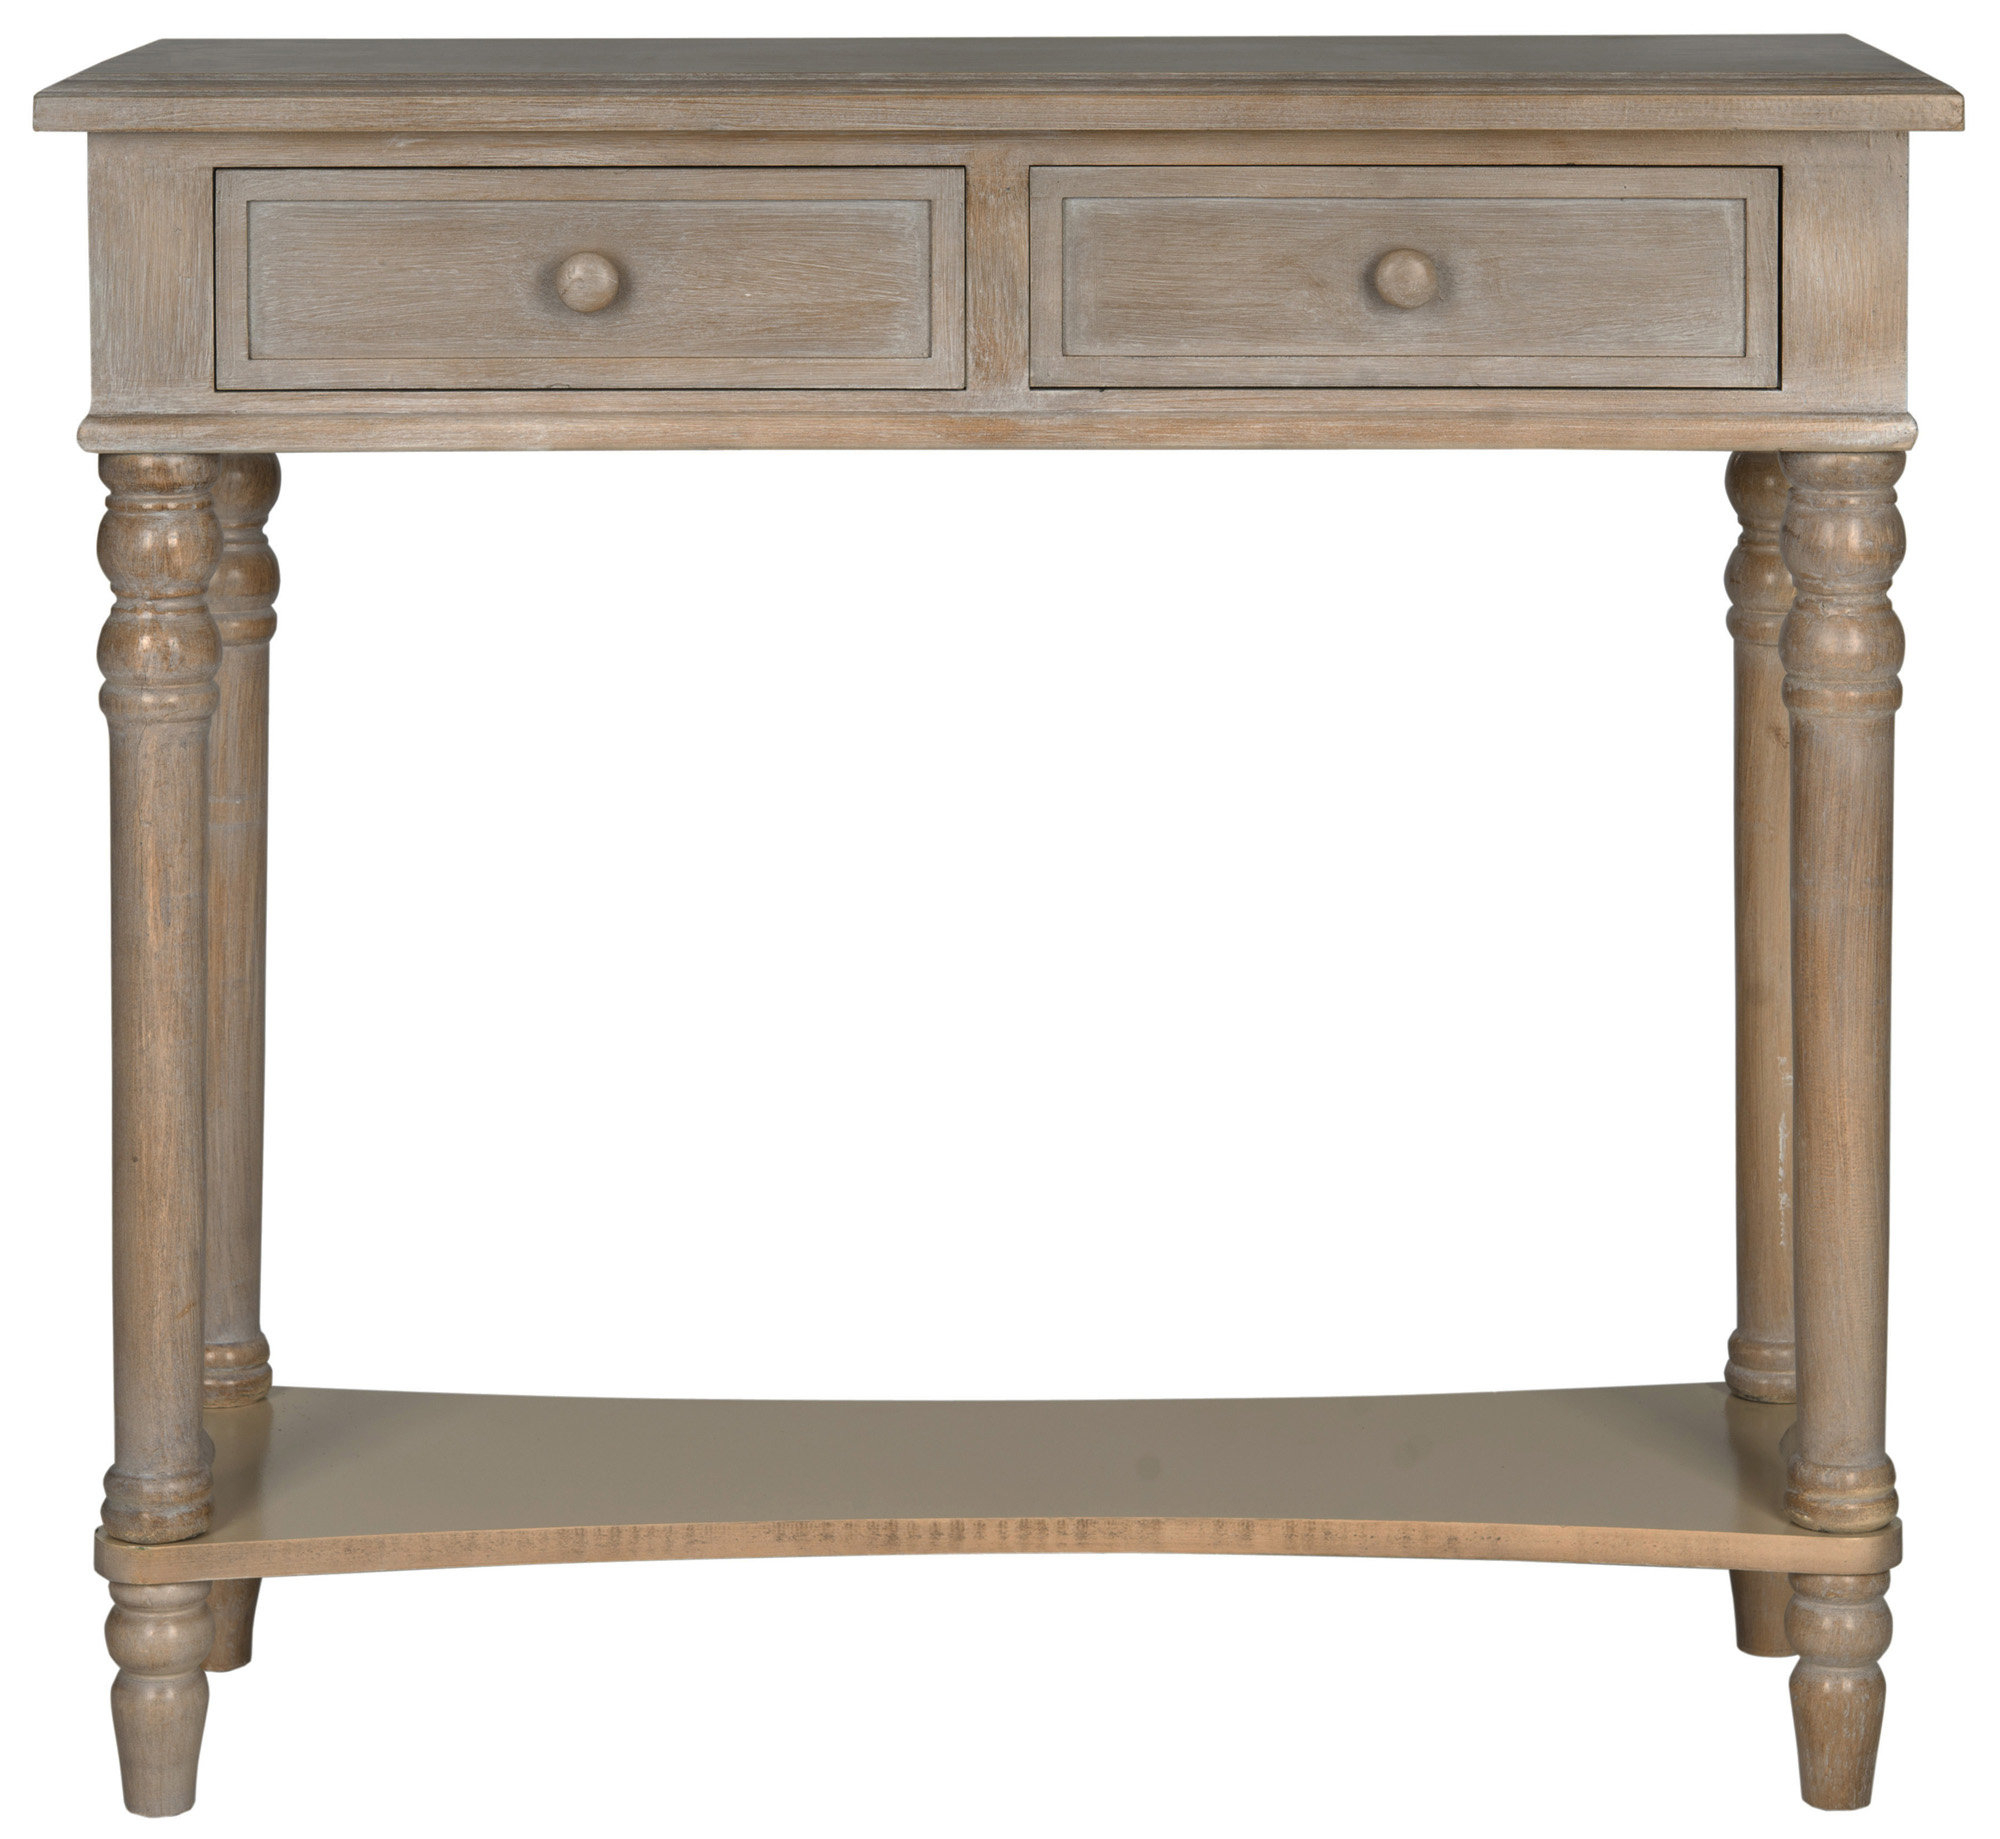 Kitchen Console Tables | Wayfair.co (View 7 of 20)